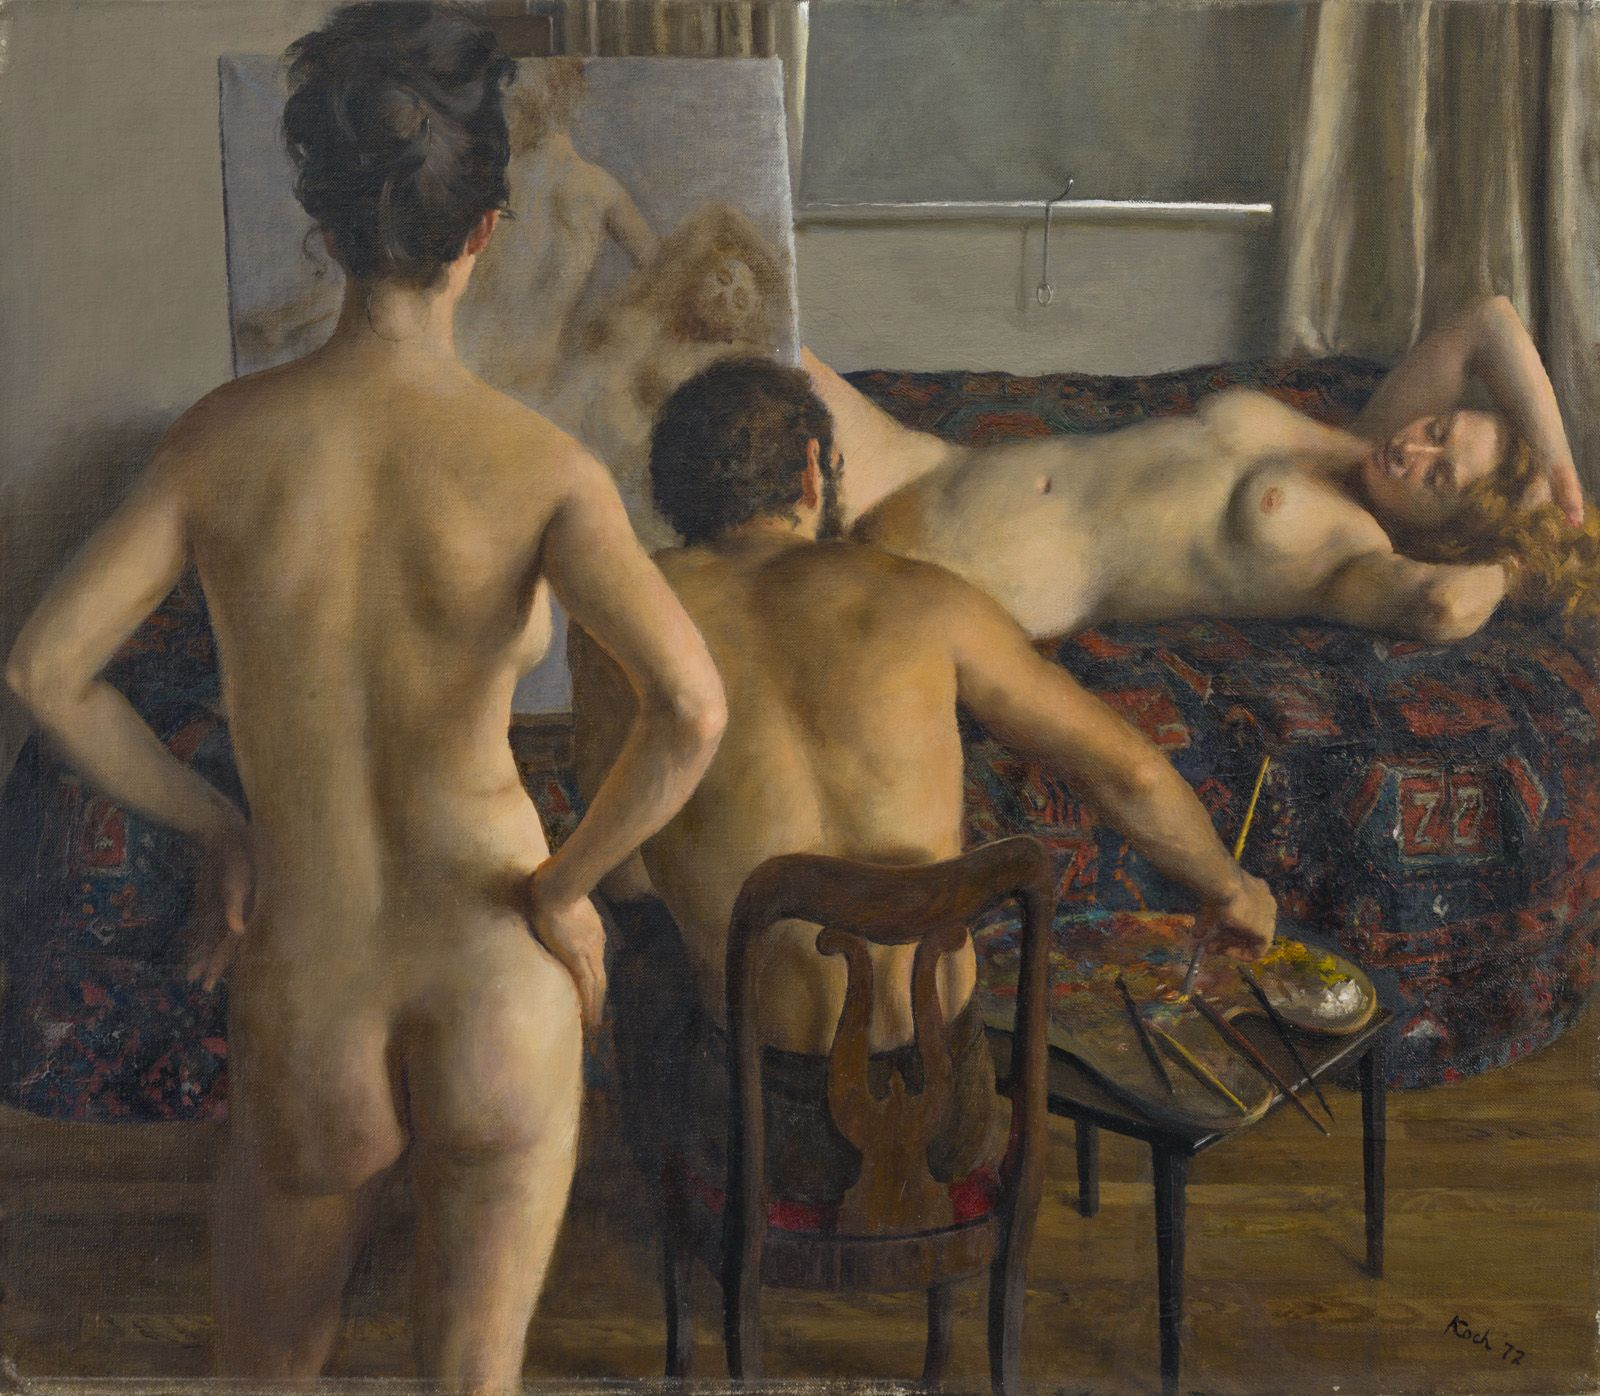 John Koch, Two Models and the Artist (SOLD), 1972, oil on canvas, 21 x 24 inches